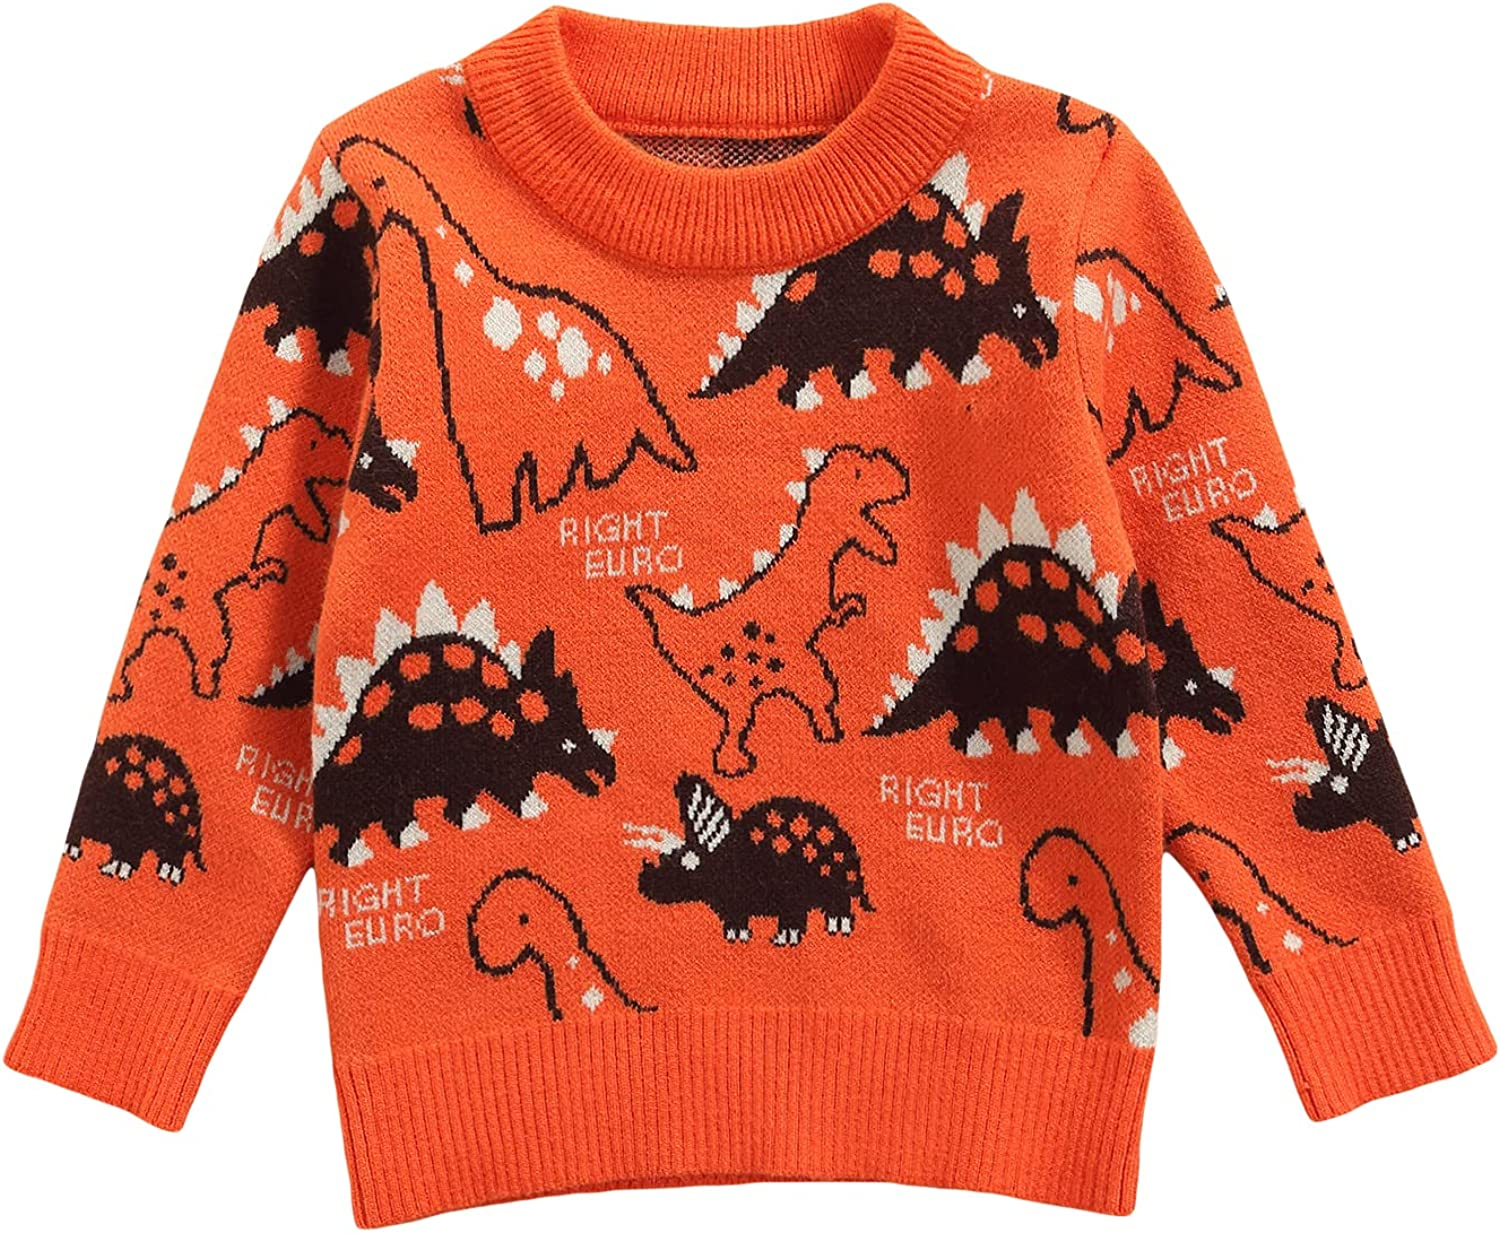 Toddlers Boys Casual Fall Sweater Knitwear Kids Round Collar Dinosaur Letters Printed Pattern Knitted Pullover Top